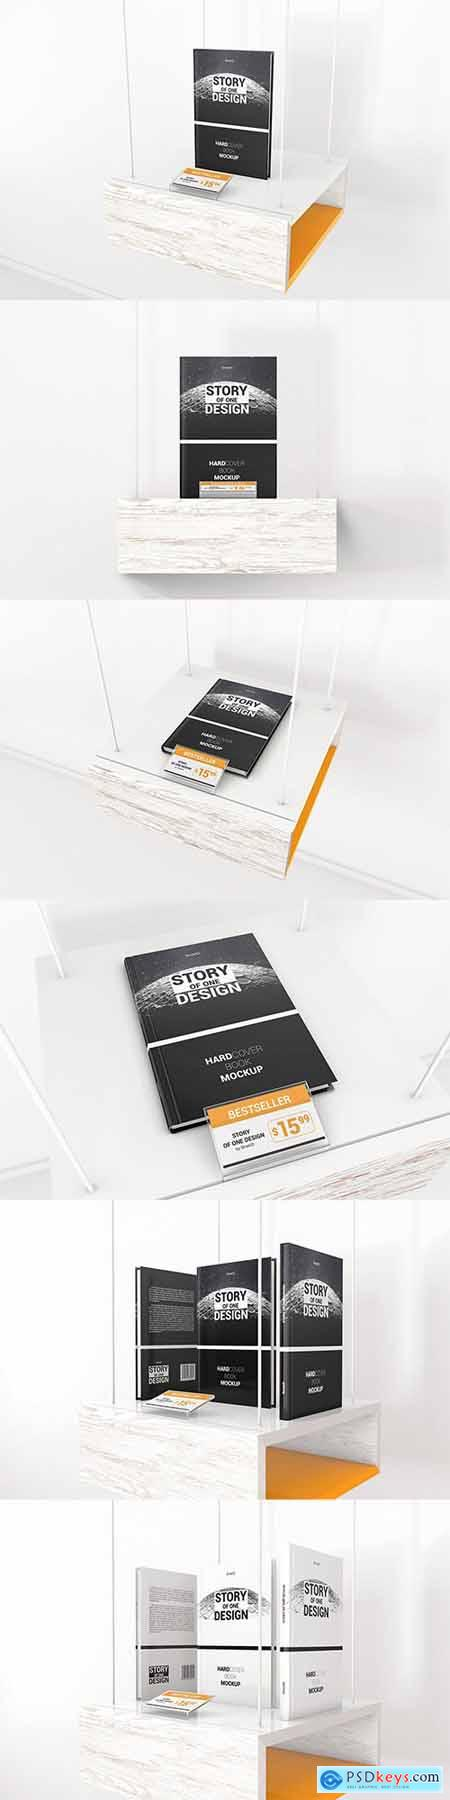 Hardcover Book With Price Tag Mockups